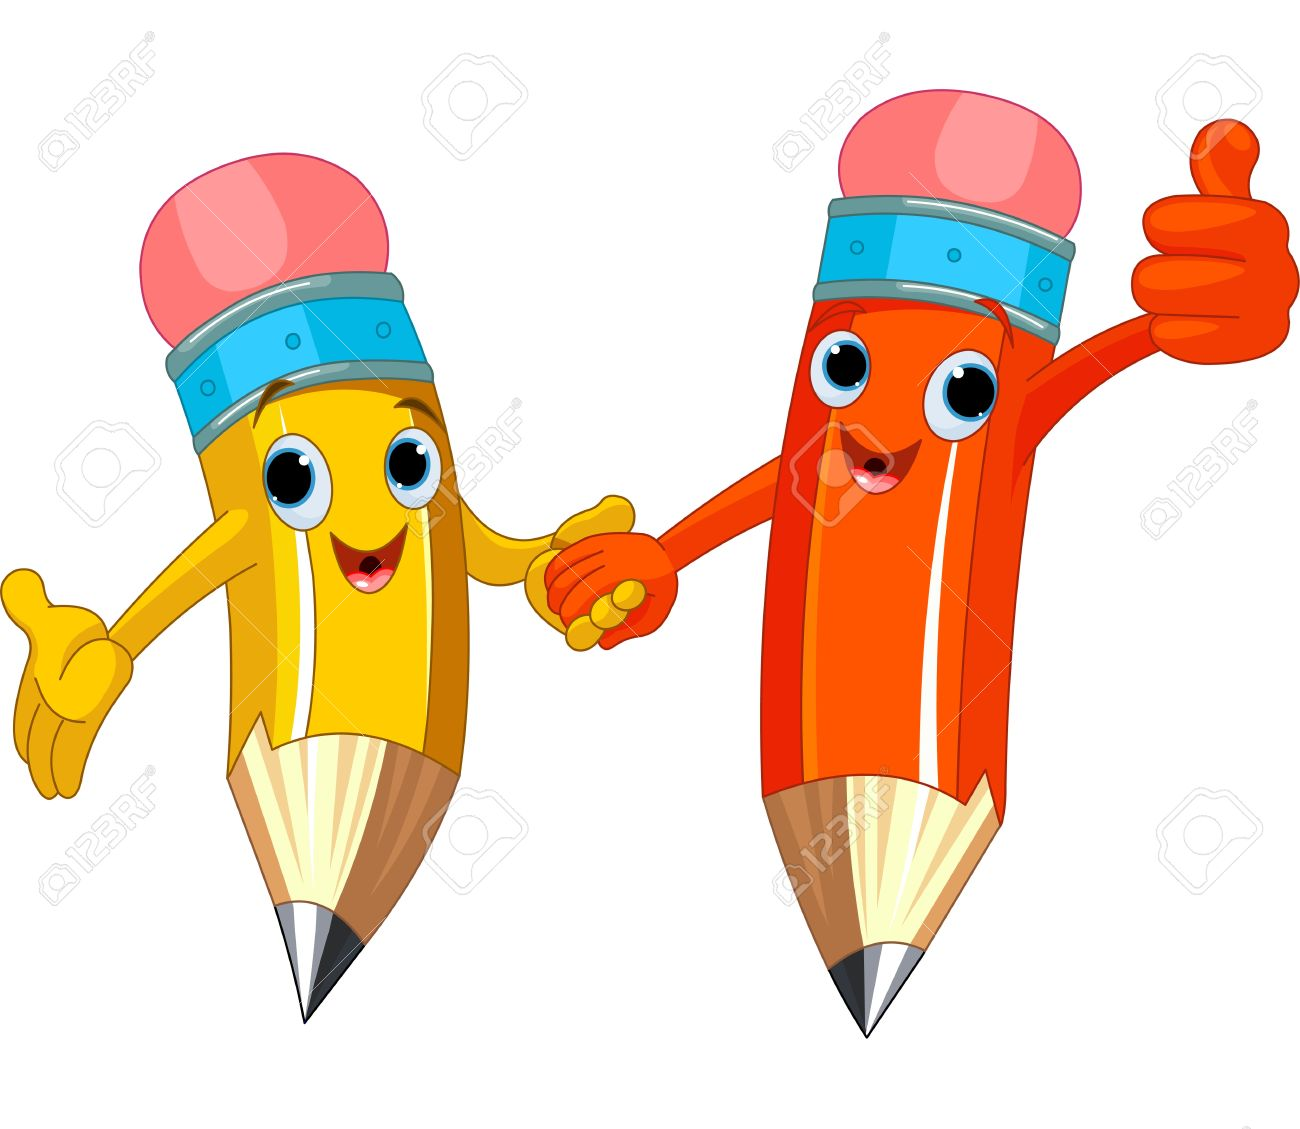 Two Cute Pencils Holding Hands Royalty Free Cliparts, Vectors, And.